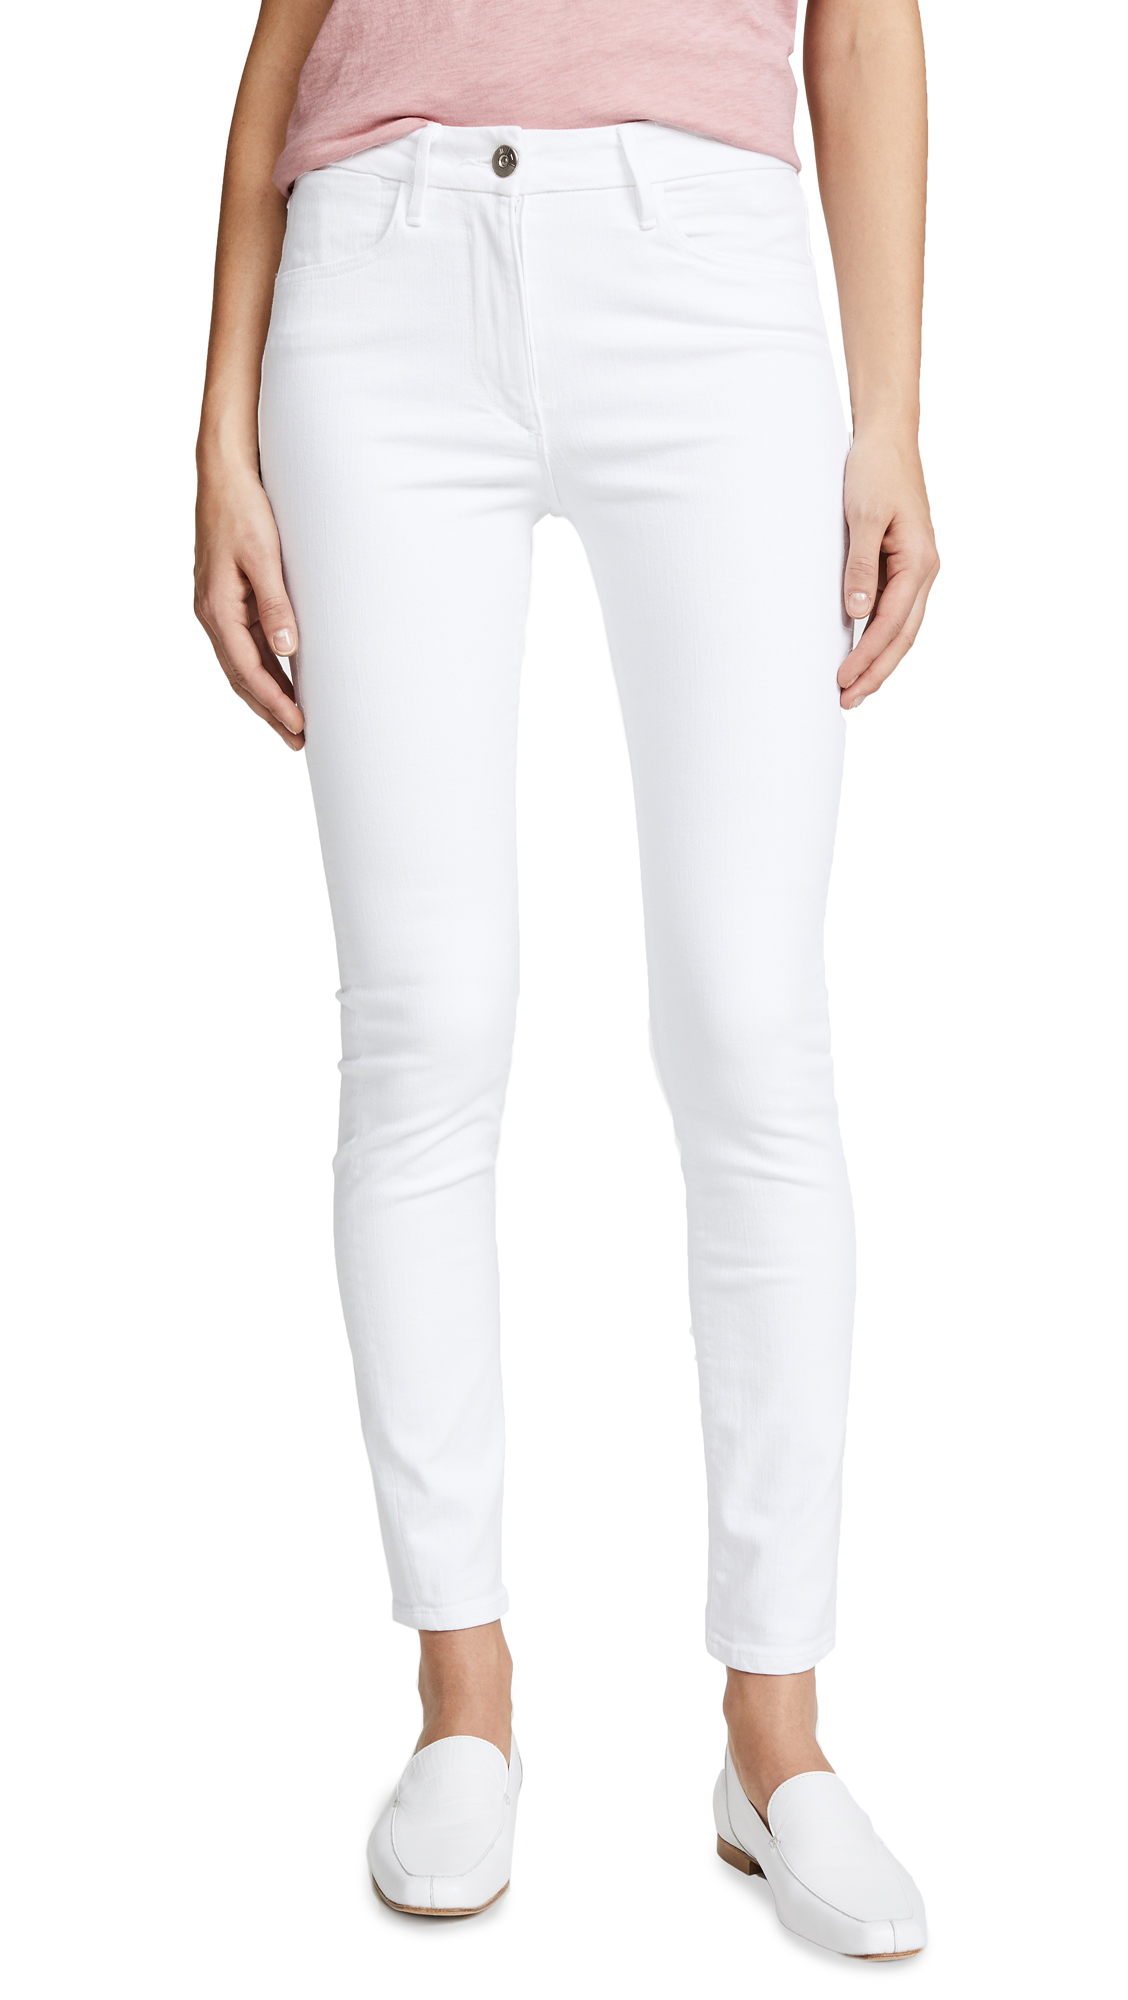 3x1 W3 High Rise Channel Seam Skinny Jeans In Aspro